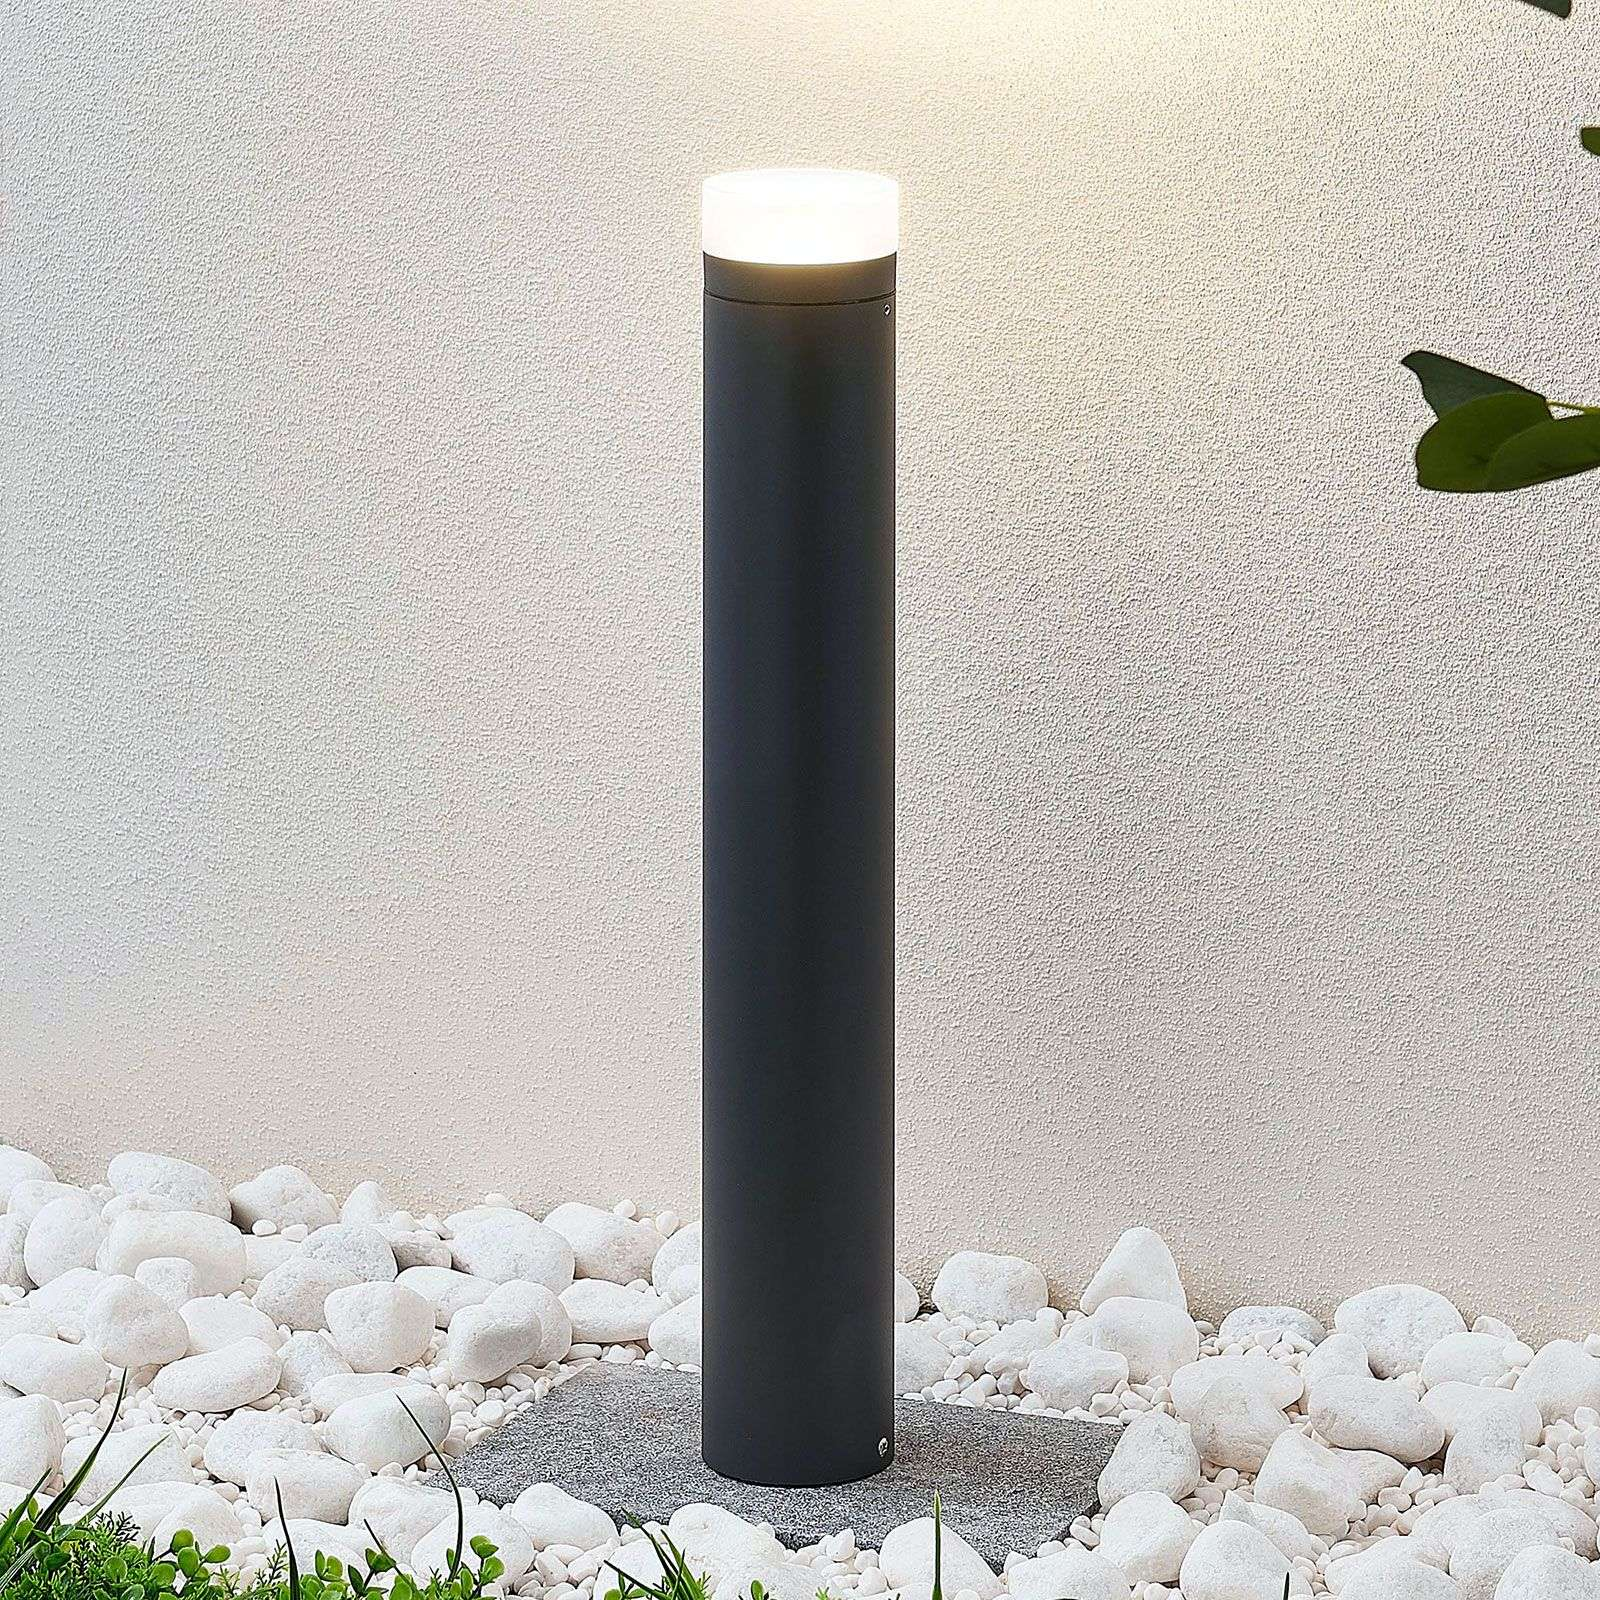 LED tuinpadverlichting Juka, cilindrisch